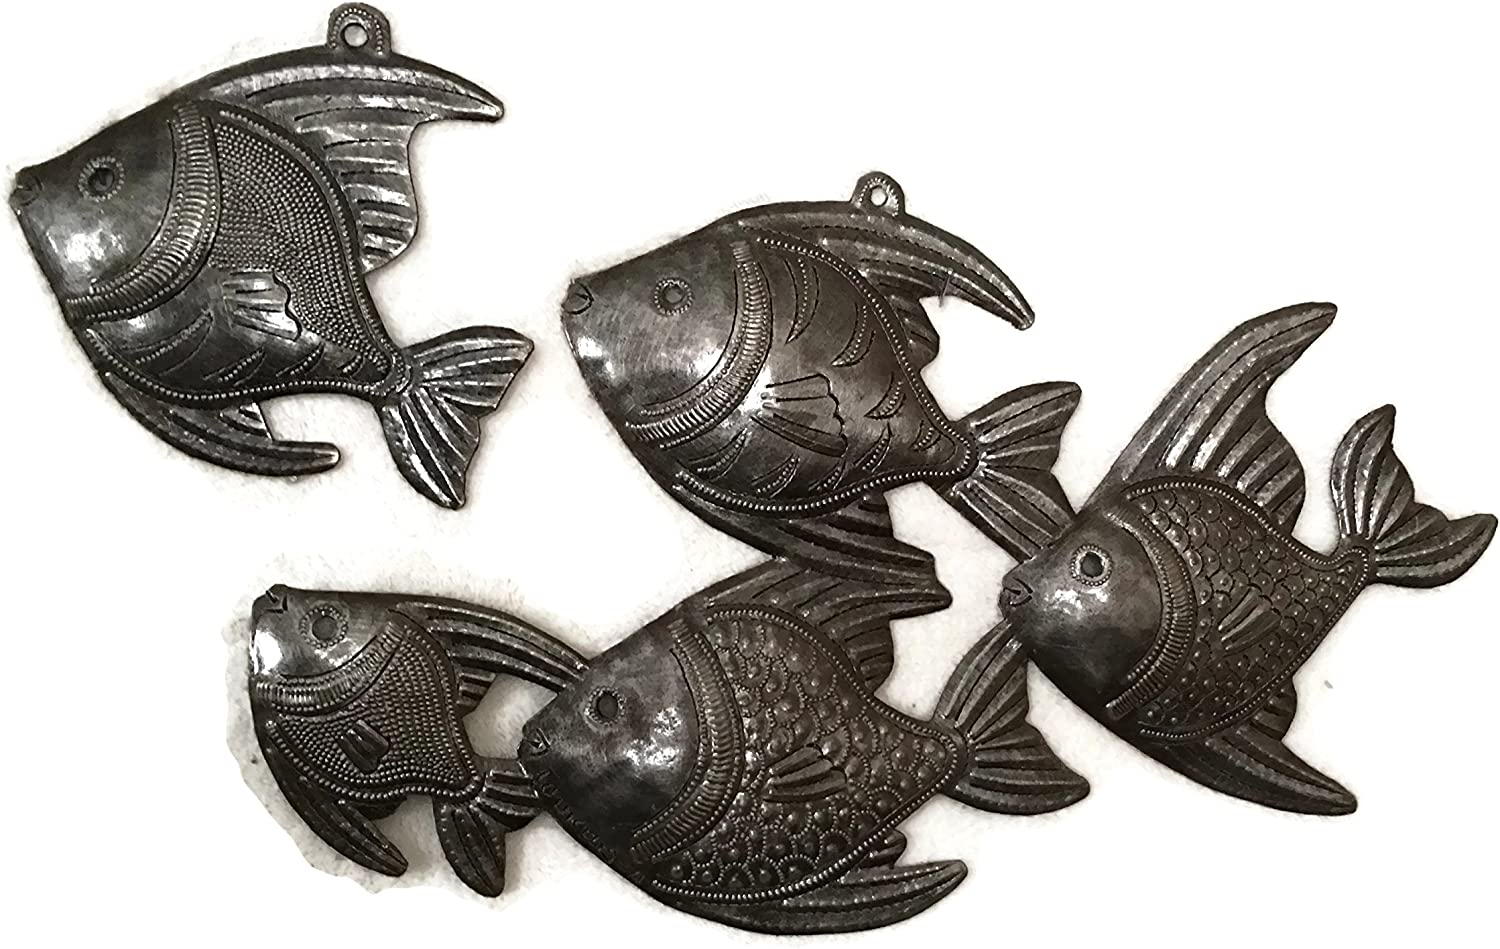 Handmade Haitian Metal Art Fish Under Water Wall Decor 14 x 8 and 5 x 5 Inches